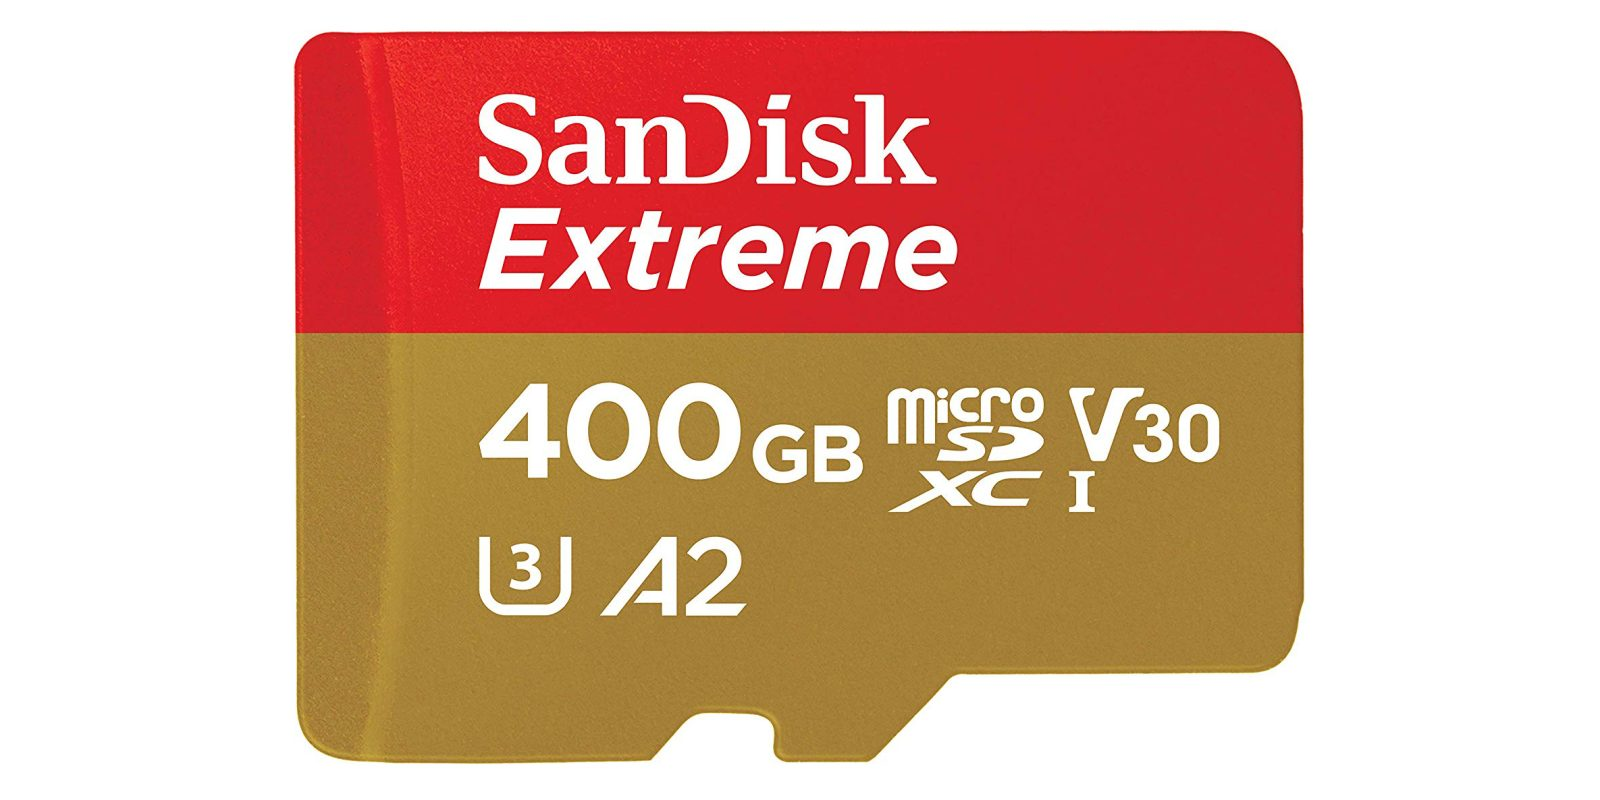 SanDisk Extreme 400GB microSD card hits Amazon all-time low at $85.50